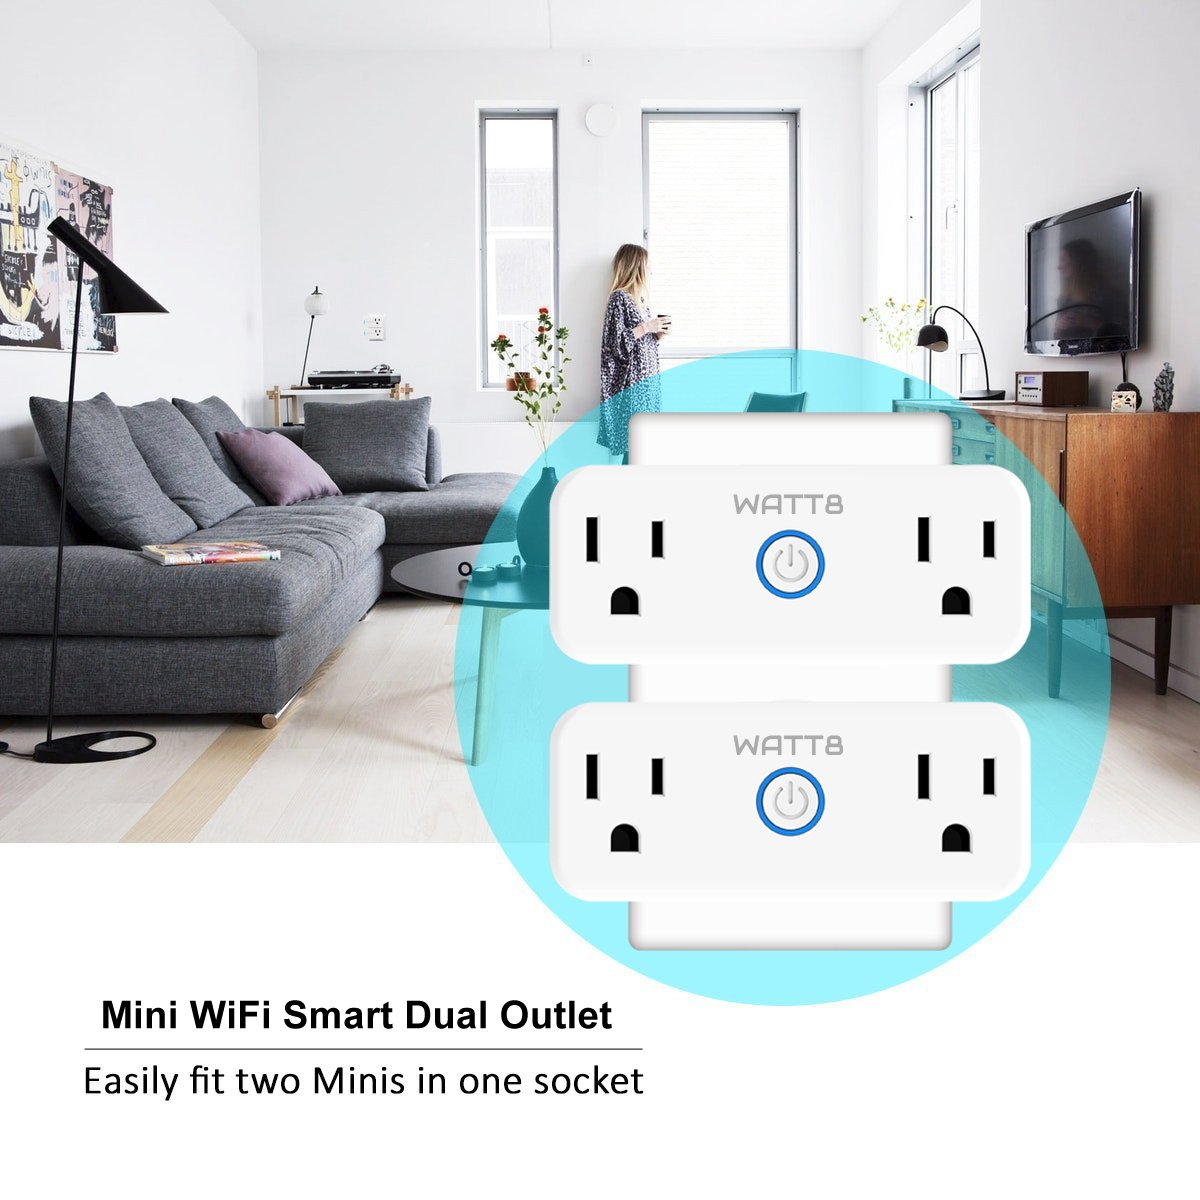 WATT8 Mini Wi-Fi Smart Plug, Dual Outlet, Works with Amazon Alexa and Google Assistant, No Hub Required, Control Your Appliances by Smart Phone and voice With Timing Function From Anywhere by WATT8 (Image #7)